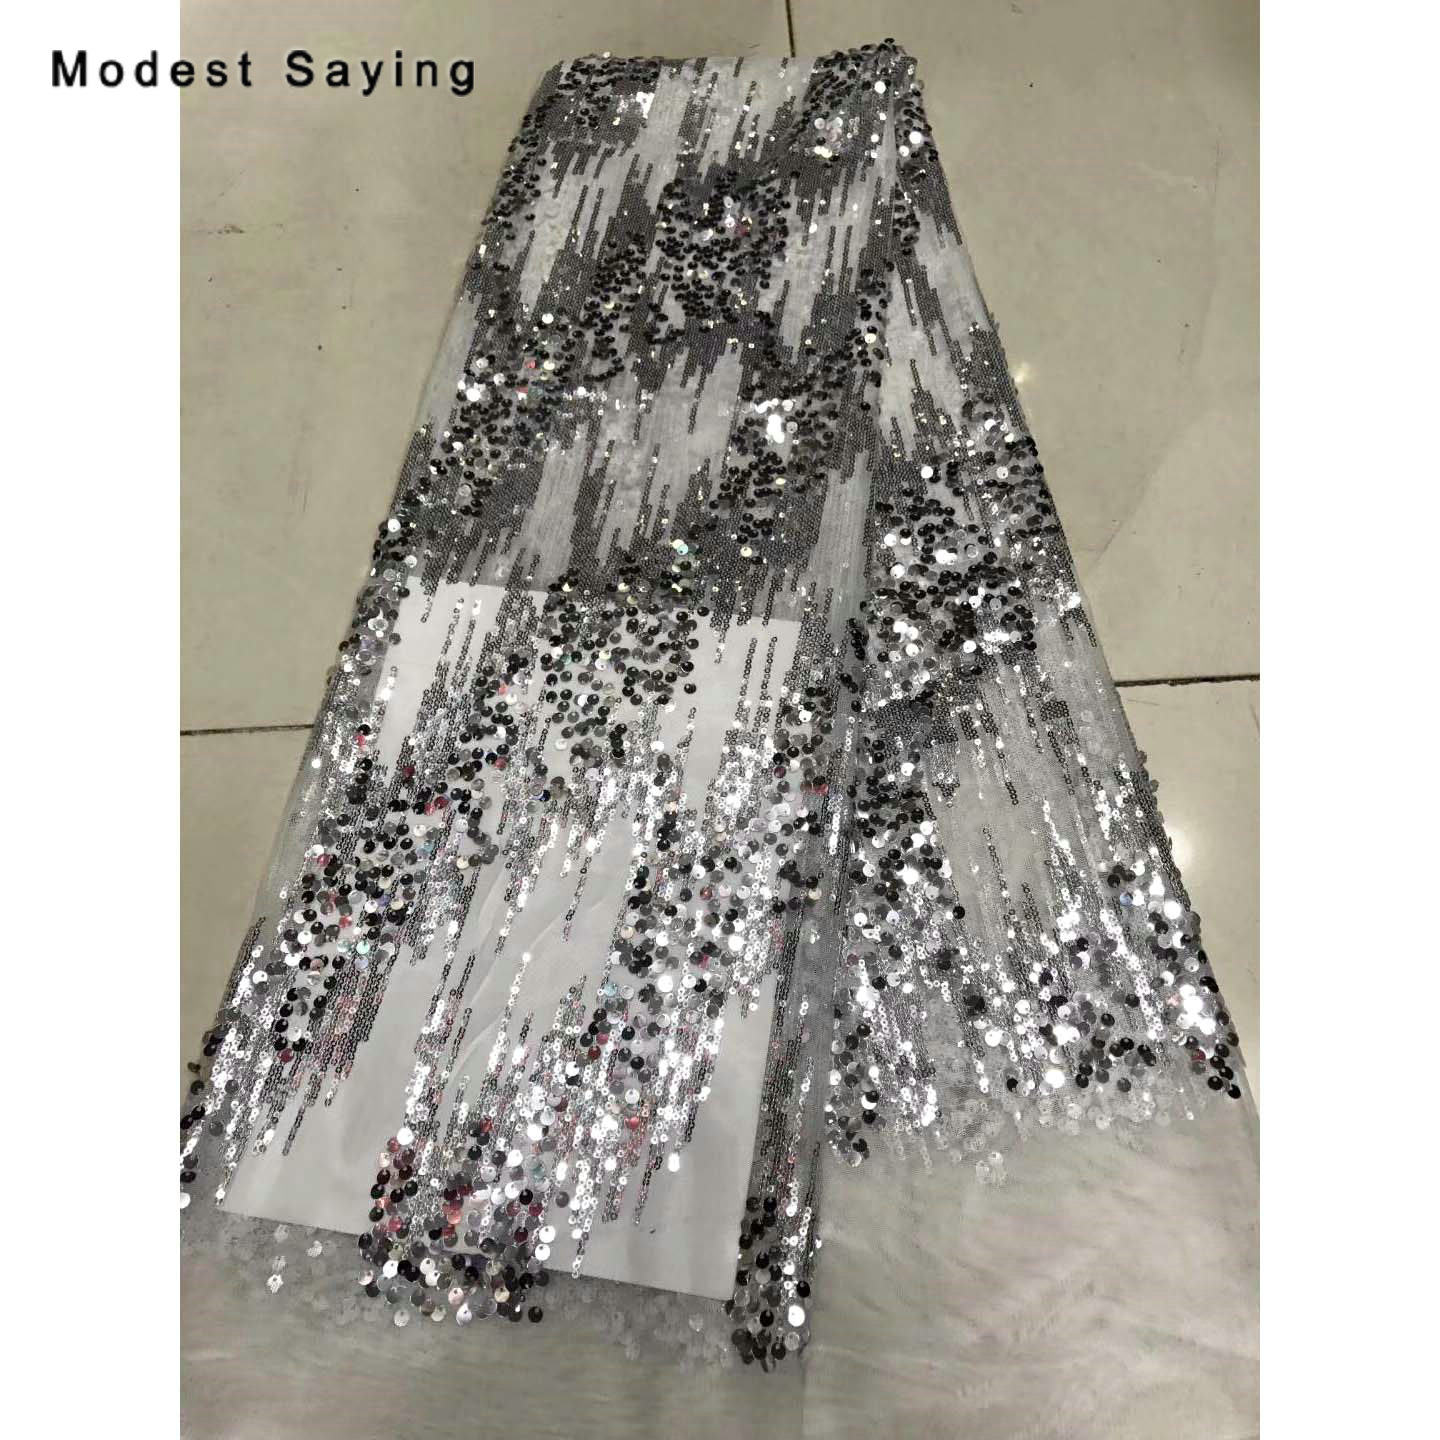 2 Yards Silver Sequins Tulle Fabric For Evening Dresses Wedding Party Oblique Sequins Cloth For Craft Mesh Decoration Material